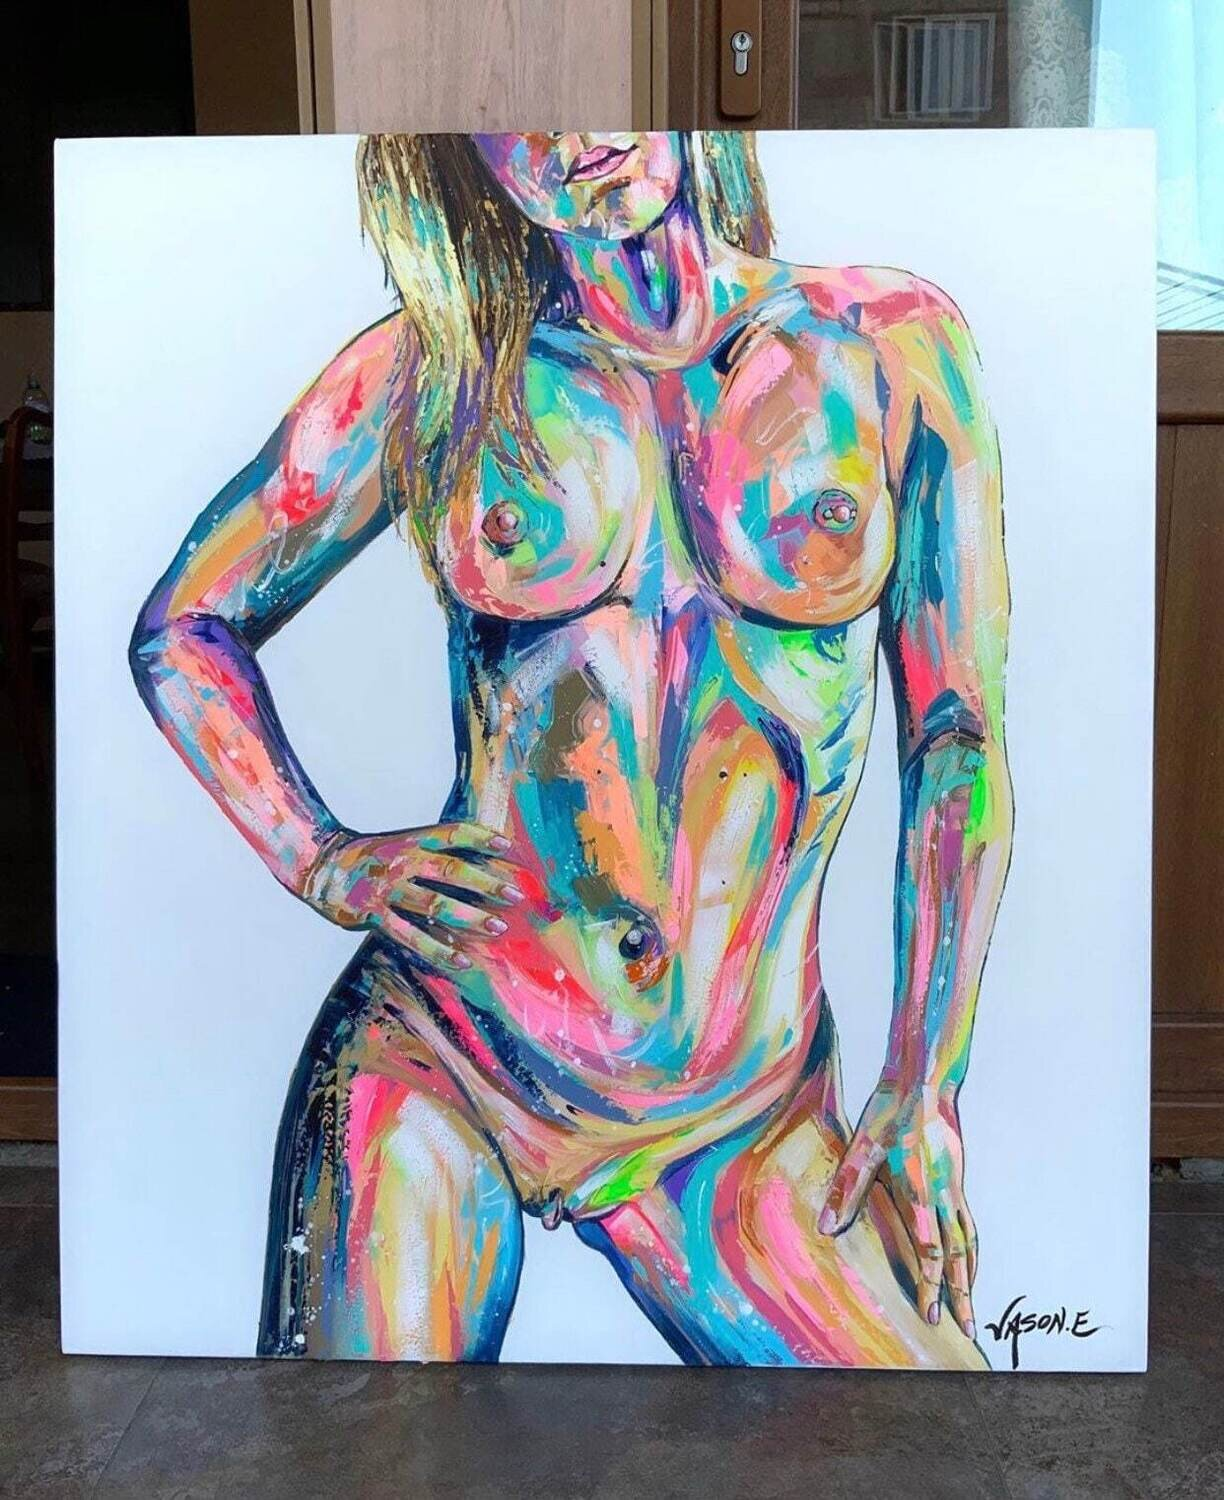 """NUDE FEMALE BODY Spontaneous Realism Oil Painting on Canvas. 31.5 x 35.5"""""""